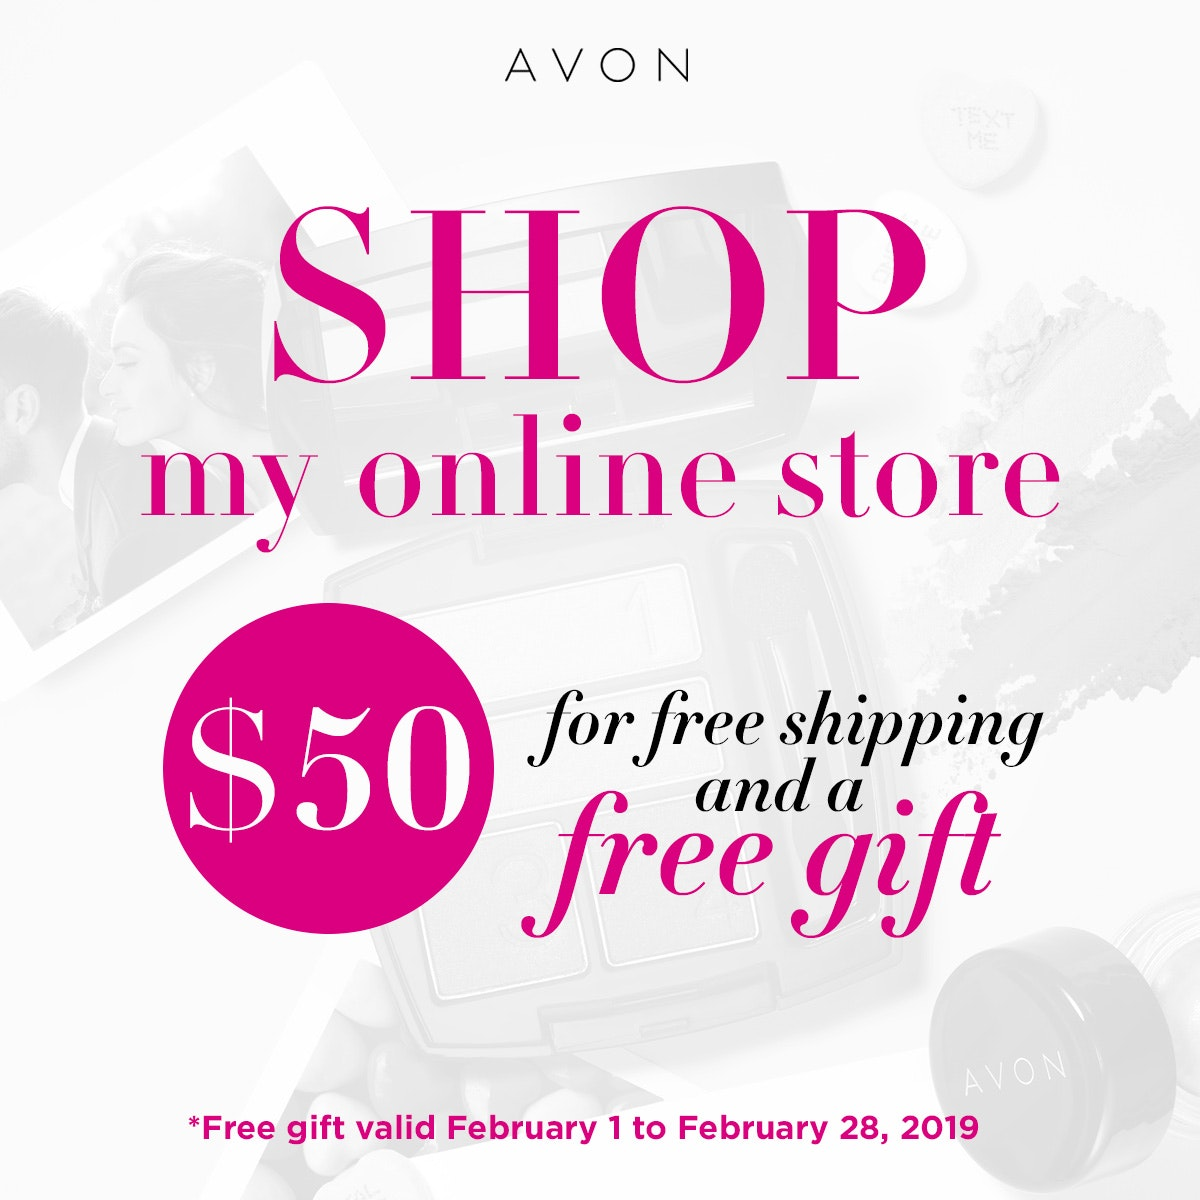 AVON COUPONS AUGUST 2019